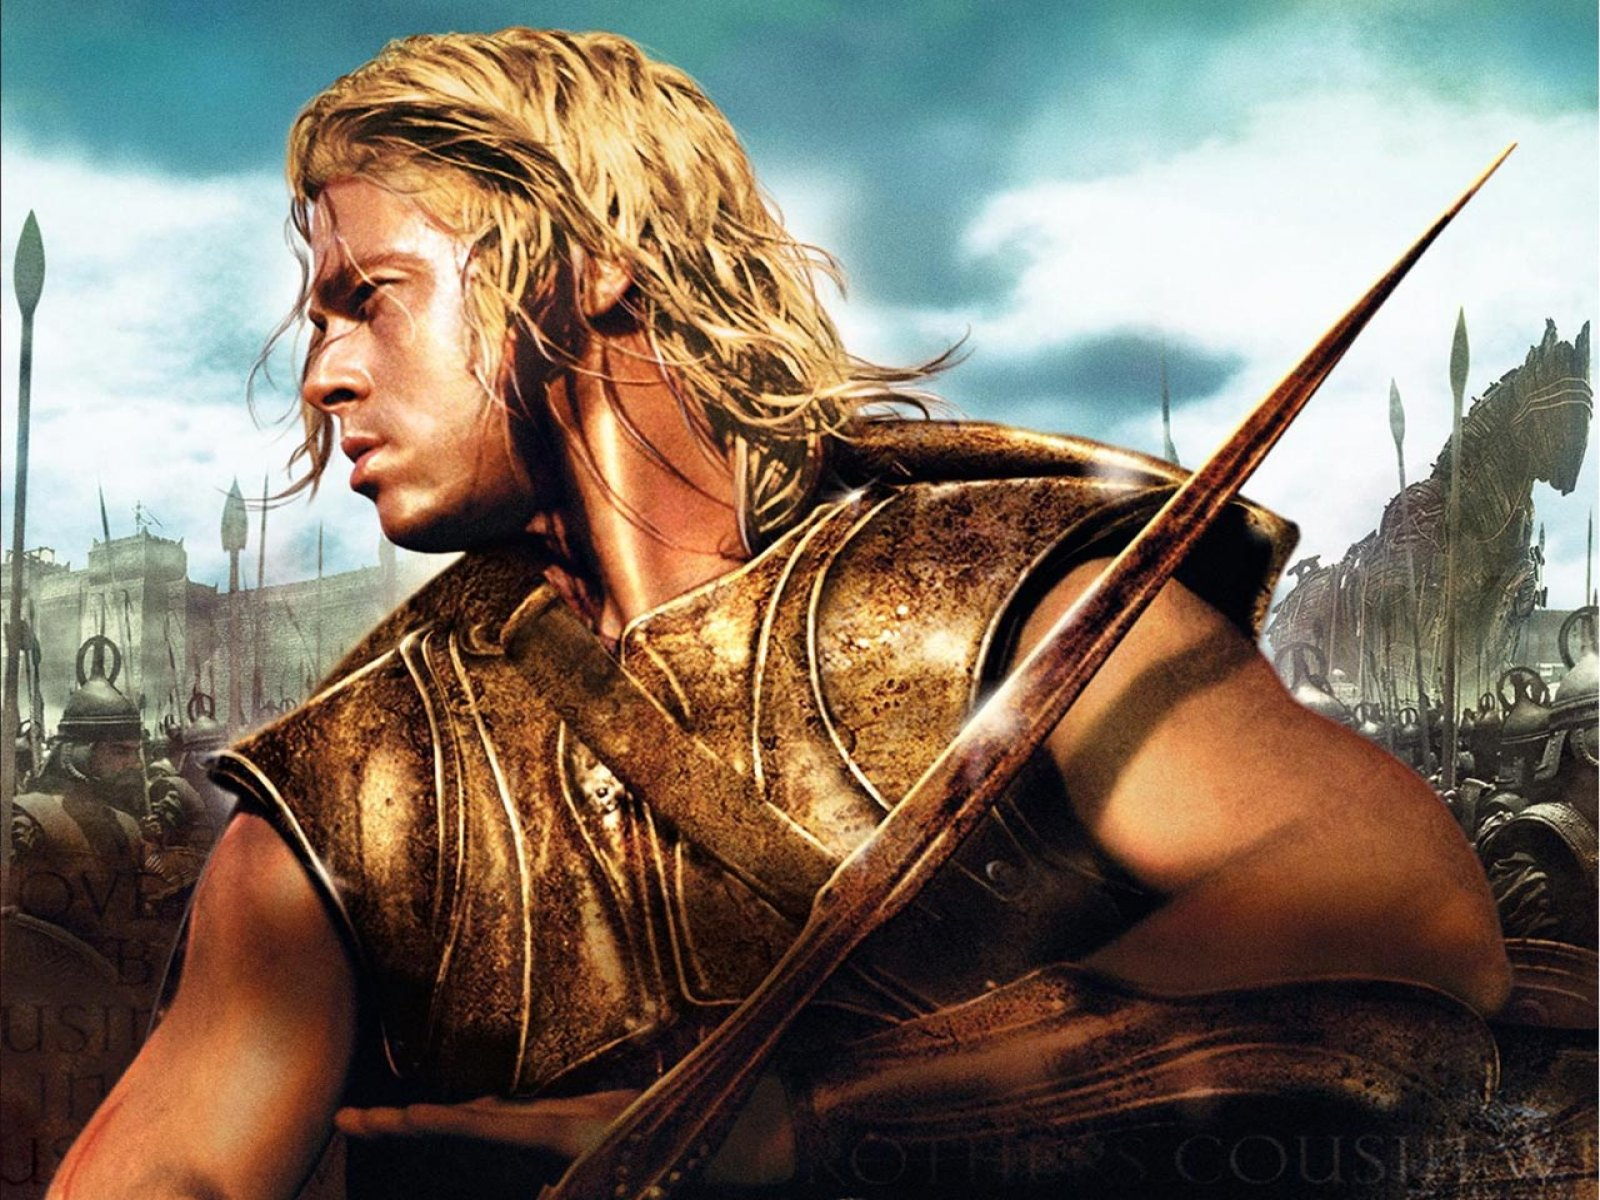 http://2.bp.blogspot.com/-SJZunoCezHU/T0pROCmgNLI/AAAAAAAAD_k/D0Gx7A4HySY/s1600/brad+pitt+in+troy+movie+wallpaper.jpg